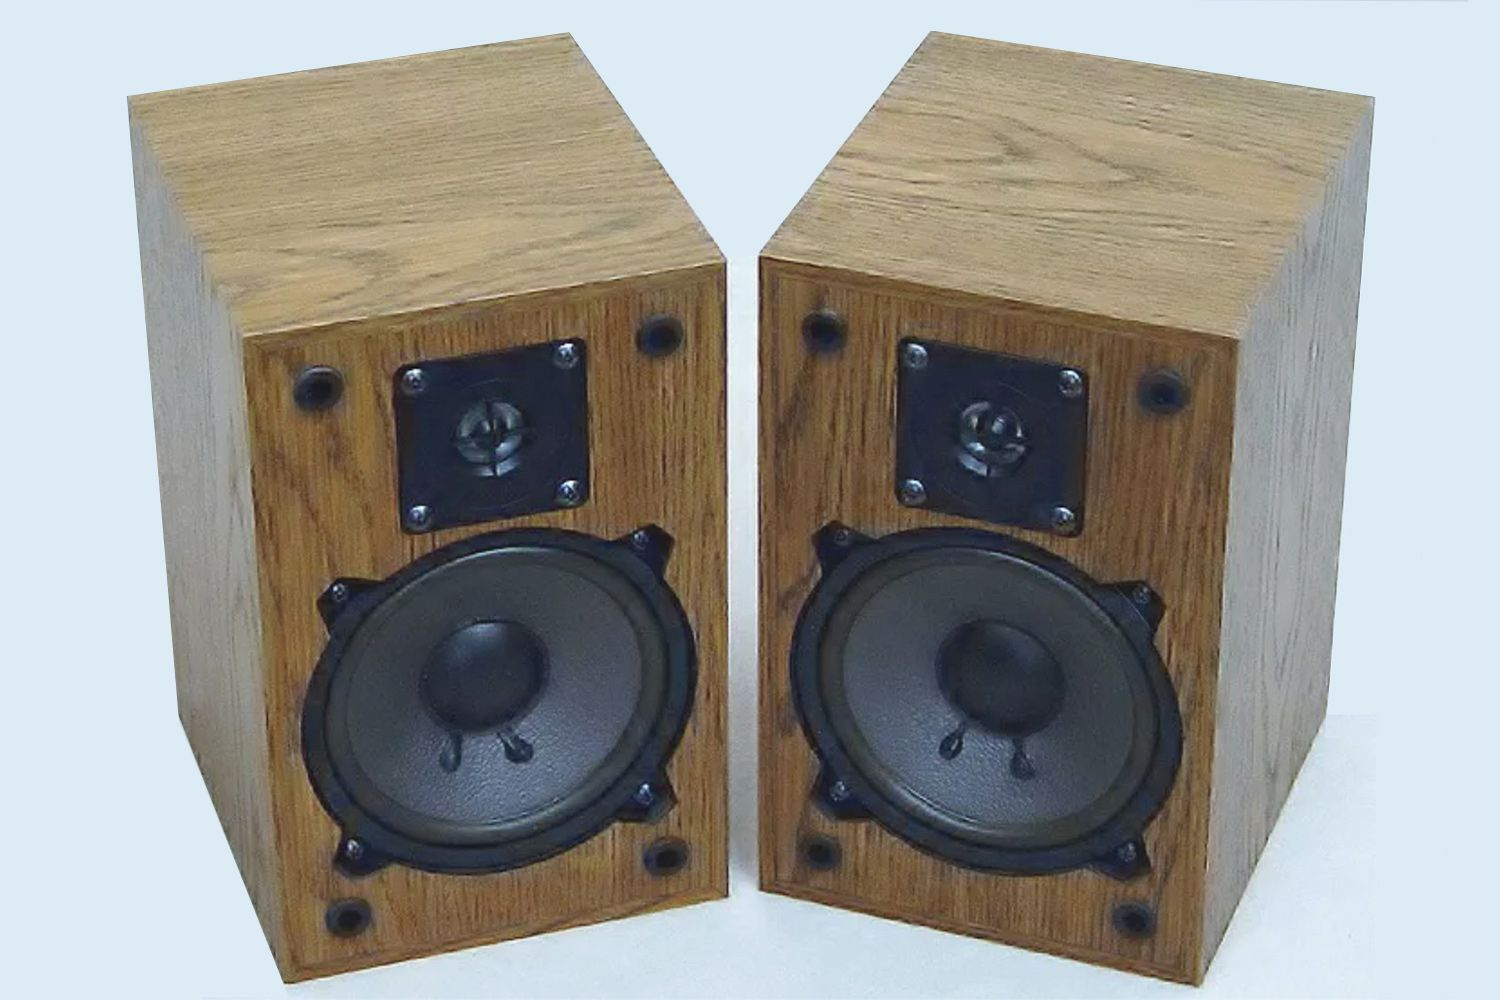 Two stereo speakers